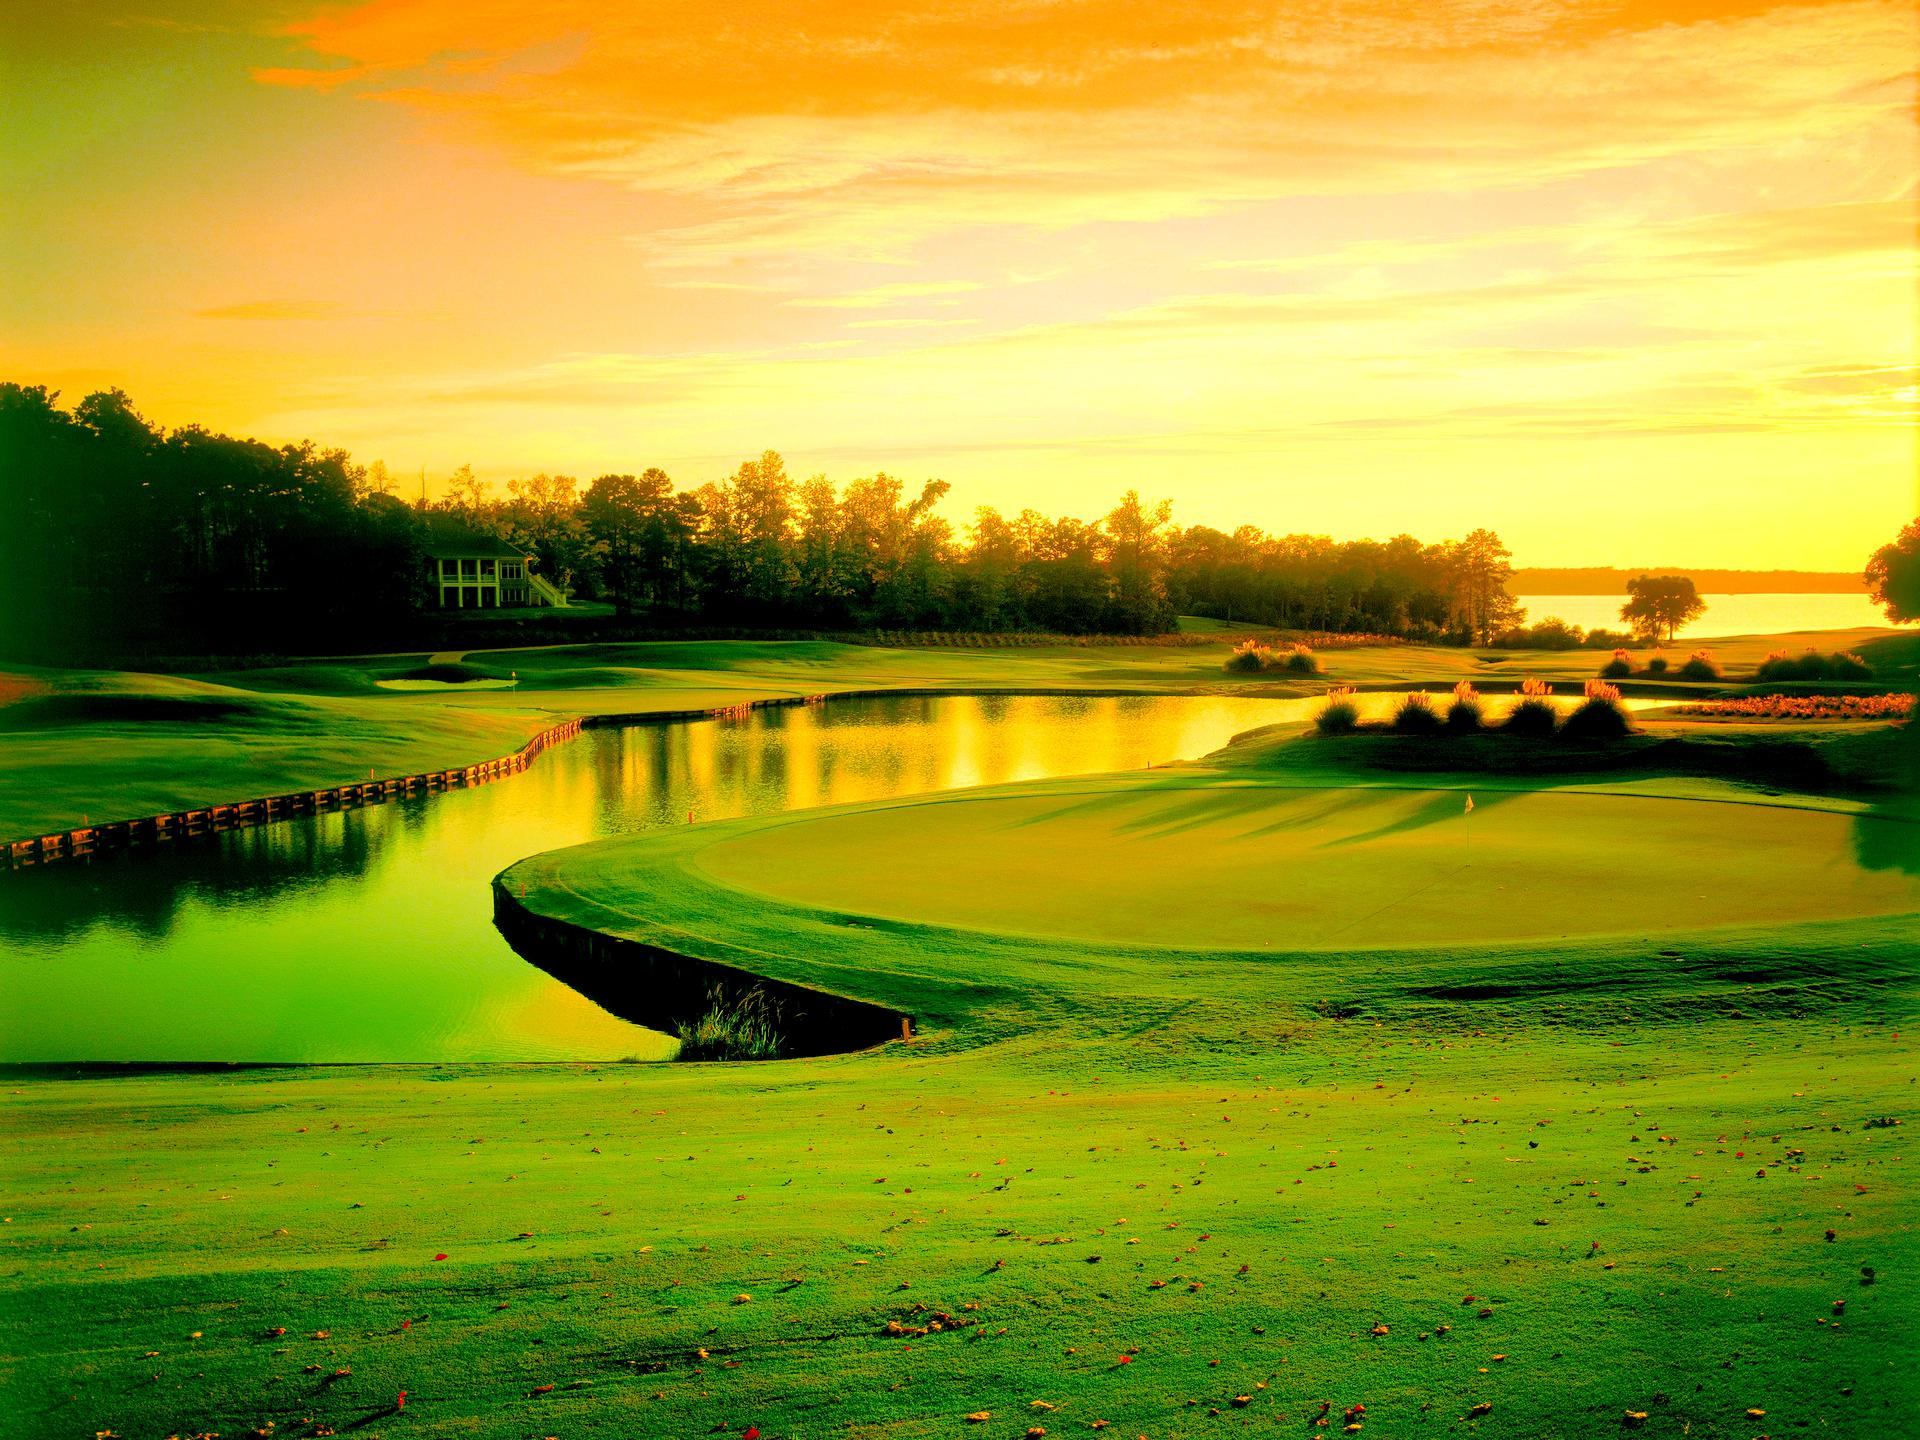 wallpaperswide golf wallpapers hd pixelstalk golf wallpapers hq android apps on google play 1920x1440